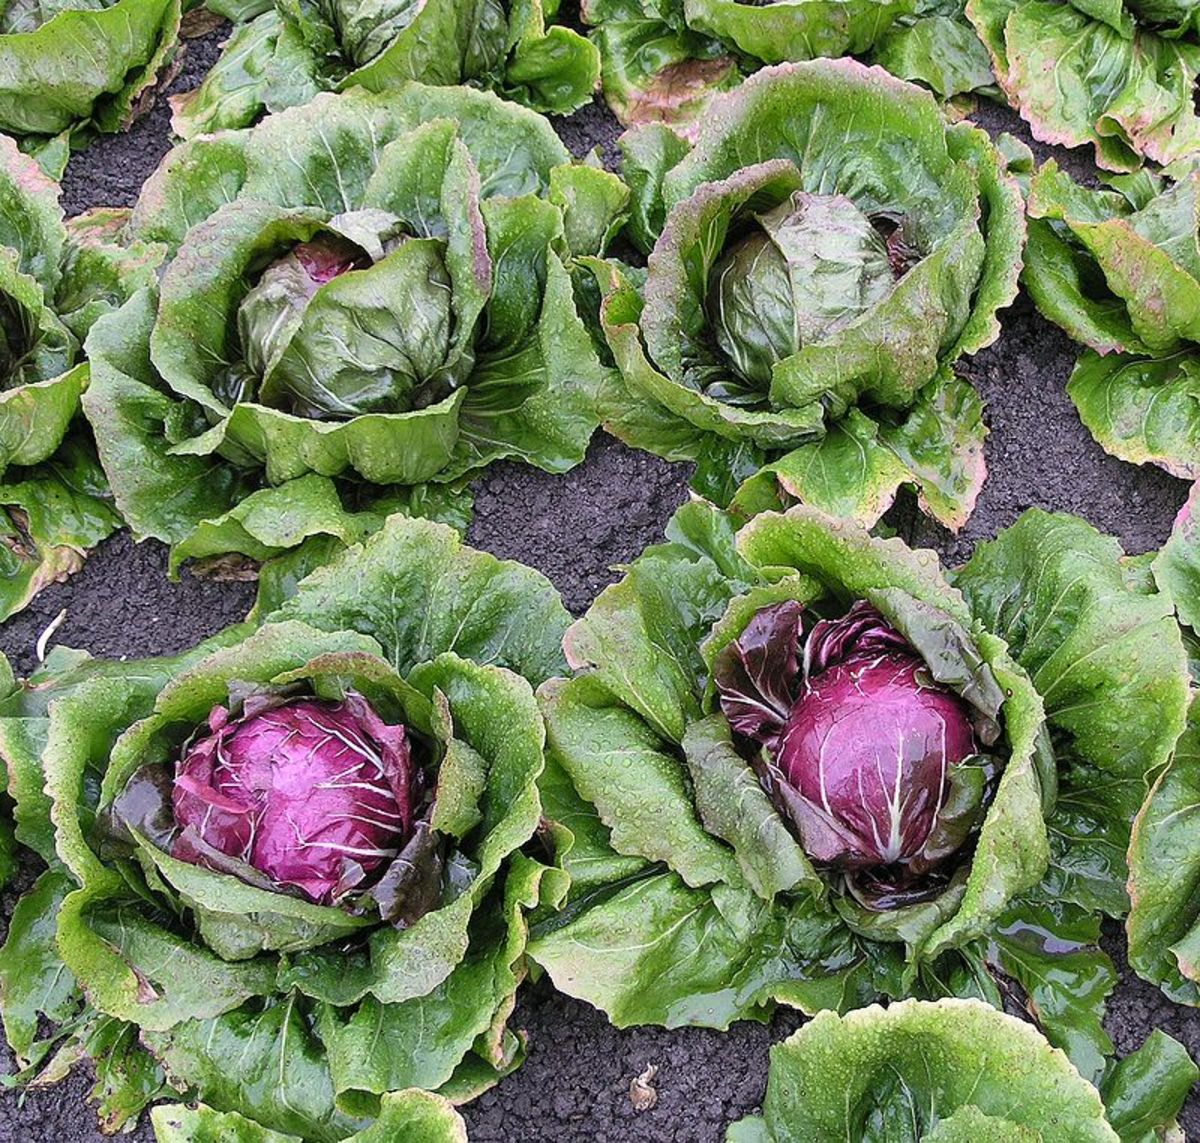 The most popular radicchio grown in the US is Chioggia which has a round head.